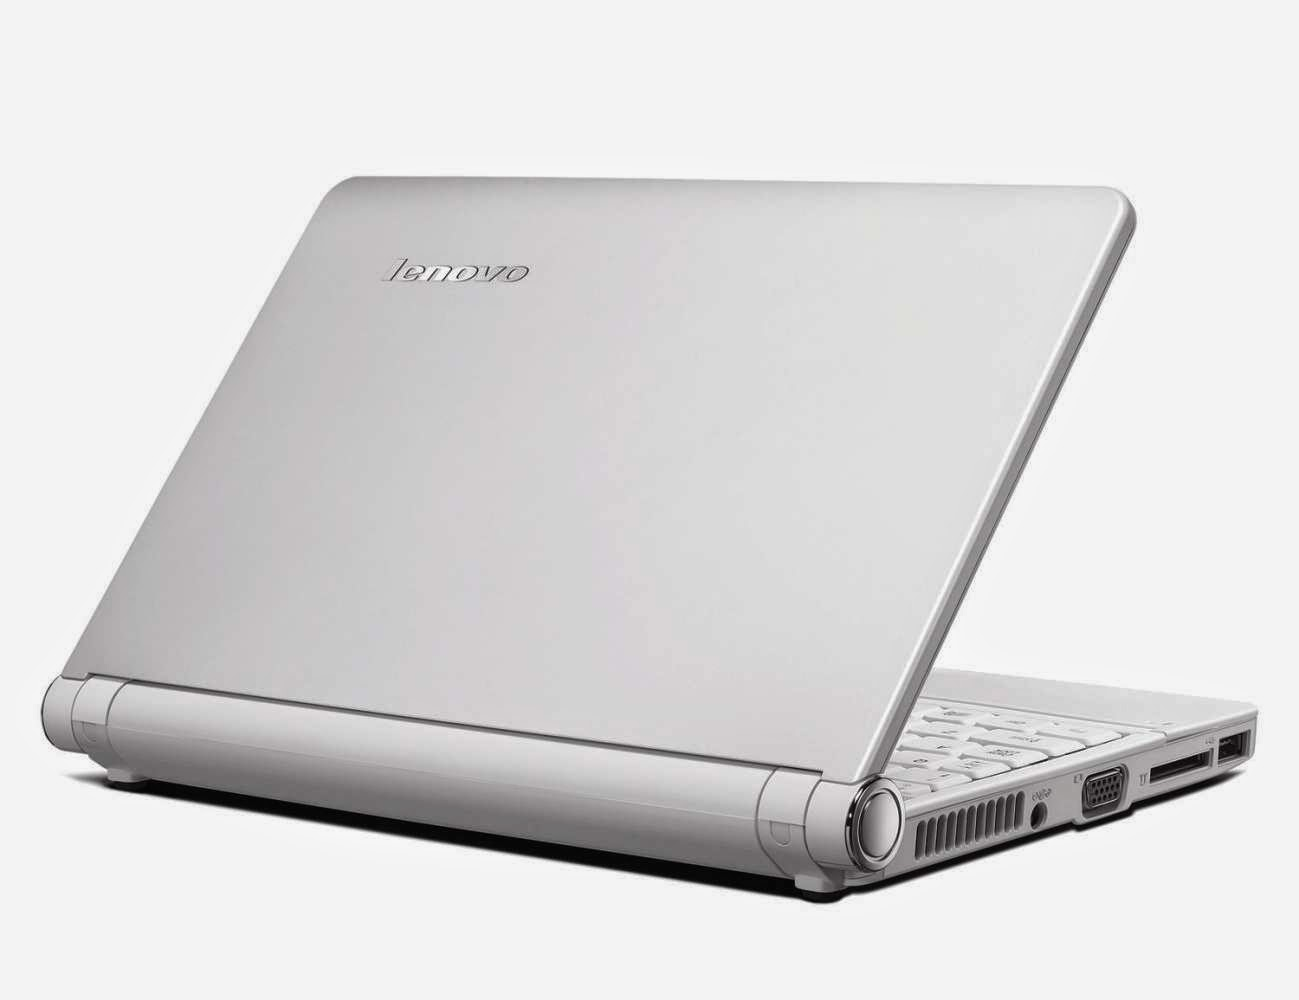 LENOVO S10 SERIES LAPTOP BIOS RECOVERY STEPS - LAPTOP